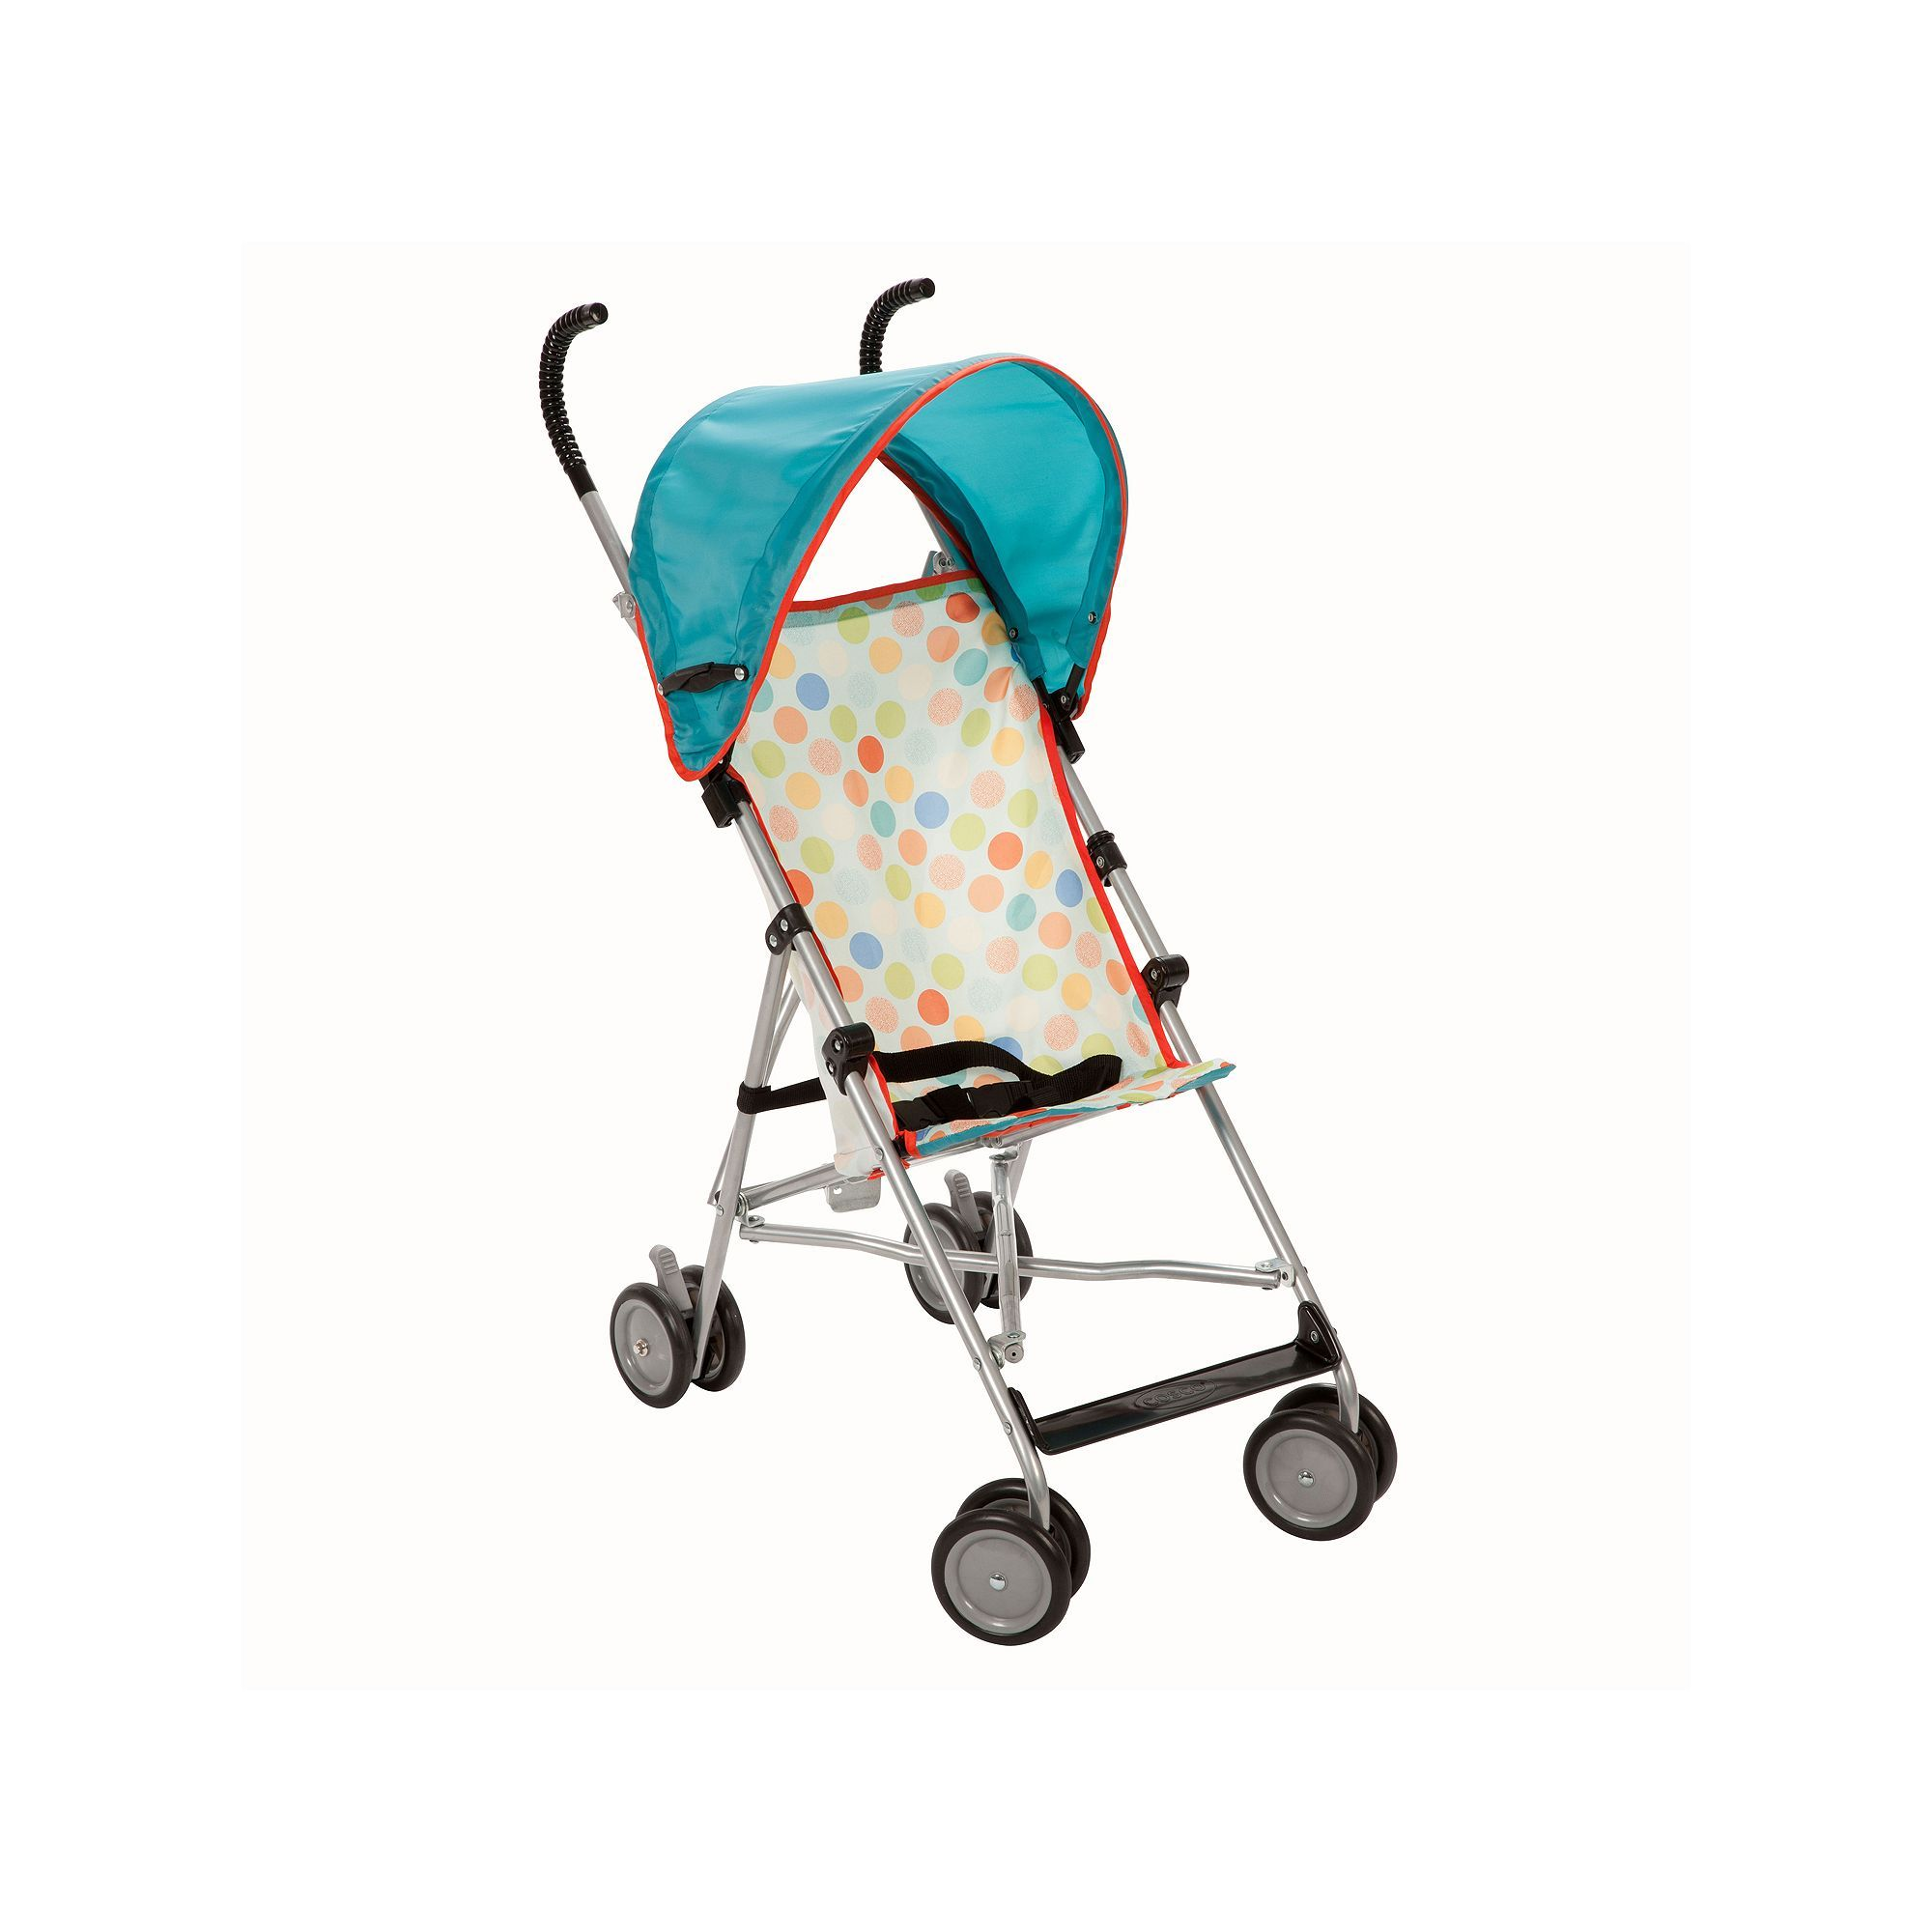 Cosco PolkaDot Umbrella Stroller with Canopy Umbrella